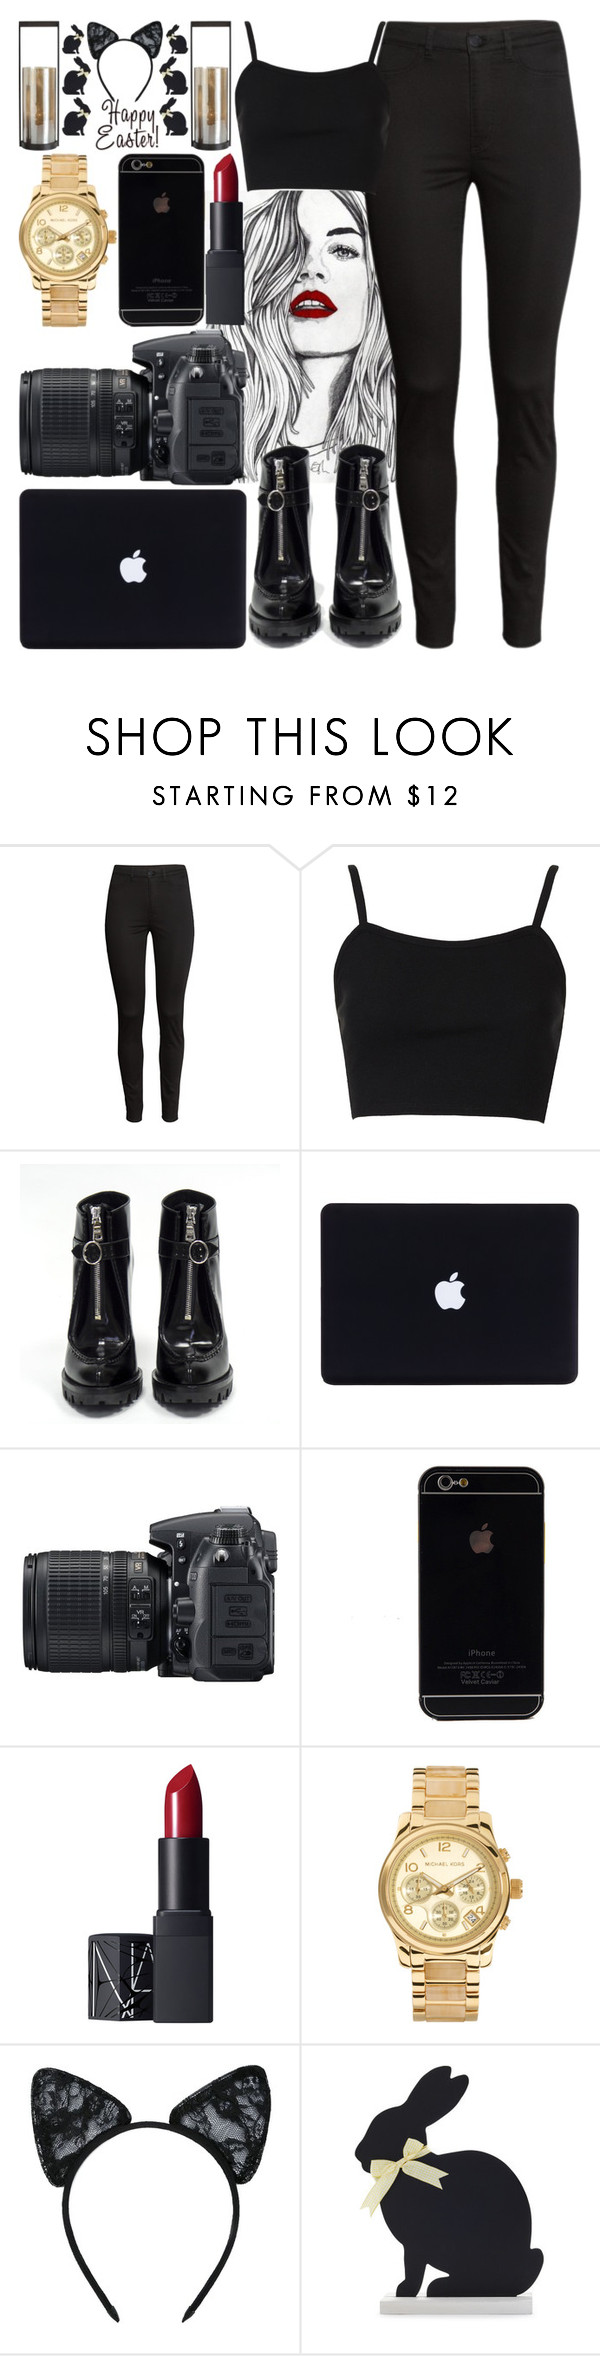 """*1079"" by asoc10 ❤ liked on Polyvore featuring H&M, Topshop, Prada, Nikon, NARS Cosmetics, Michael Kors, Maison Close, Sur La Table, saturday and 26"